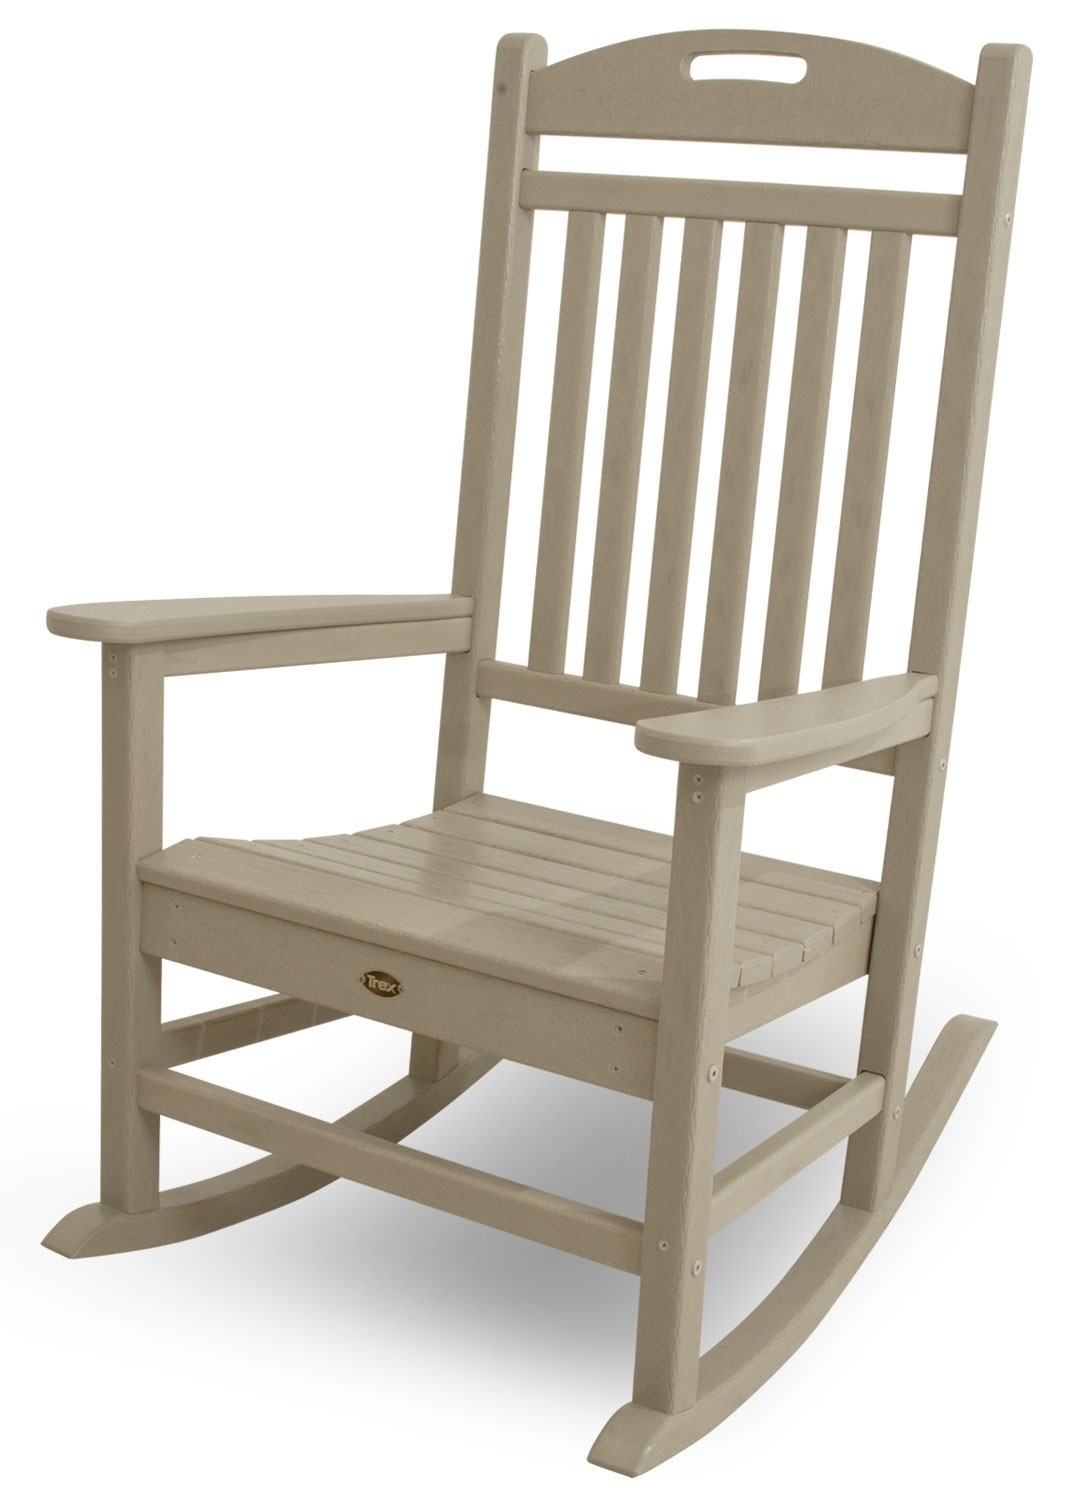 Yacht Club Rocking Chair For Patio Furniture Rocking Benches (View 15 of 15)